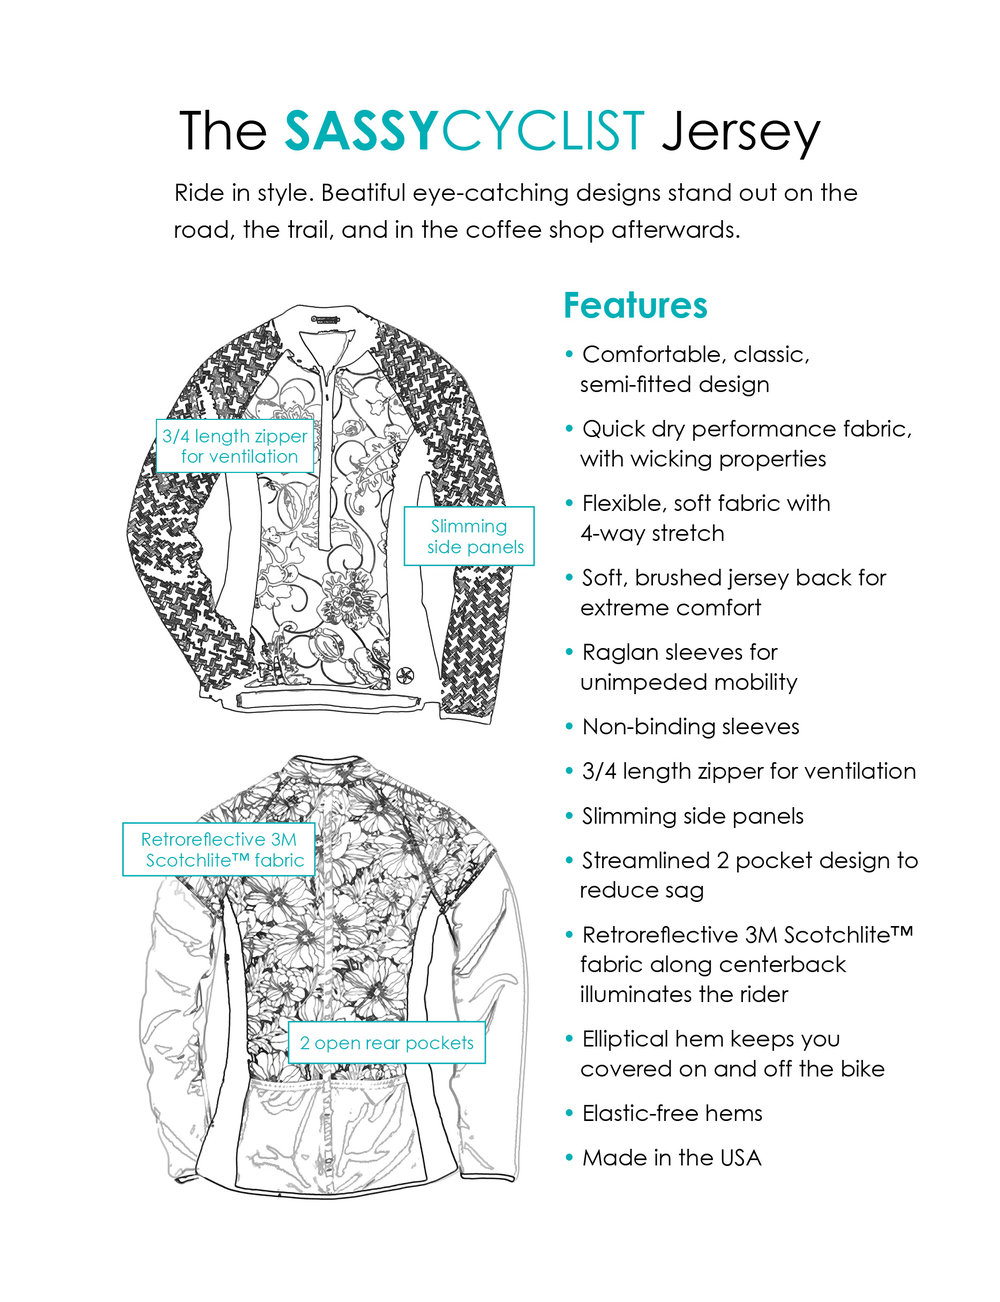 Features of the SassyCyclist Women's Cycling Jersey